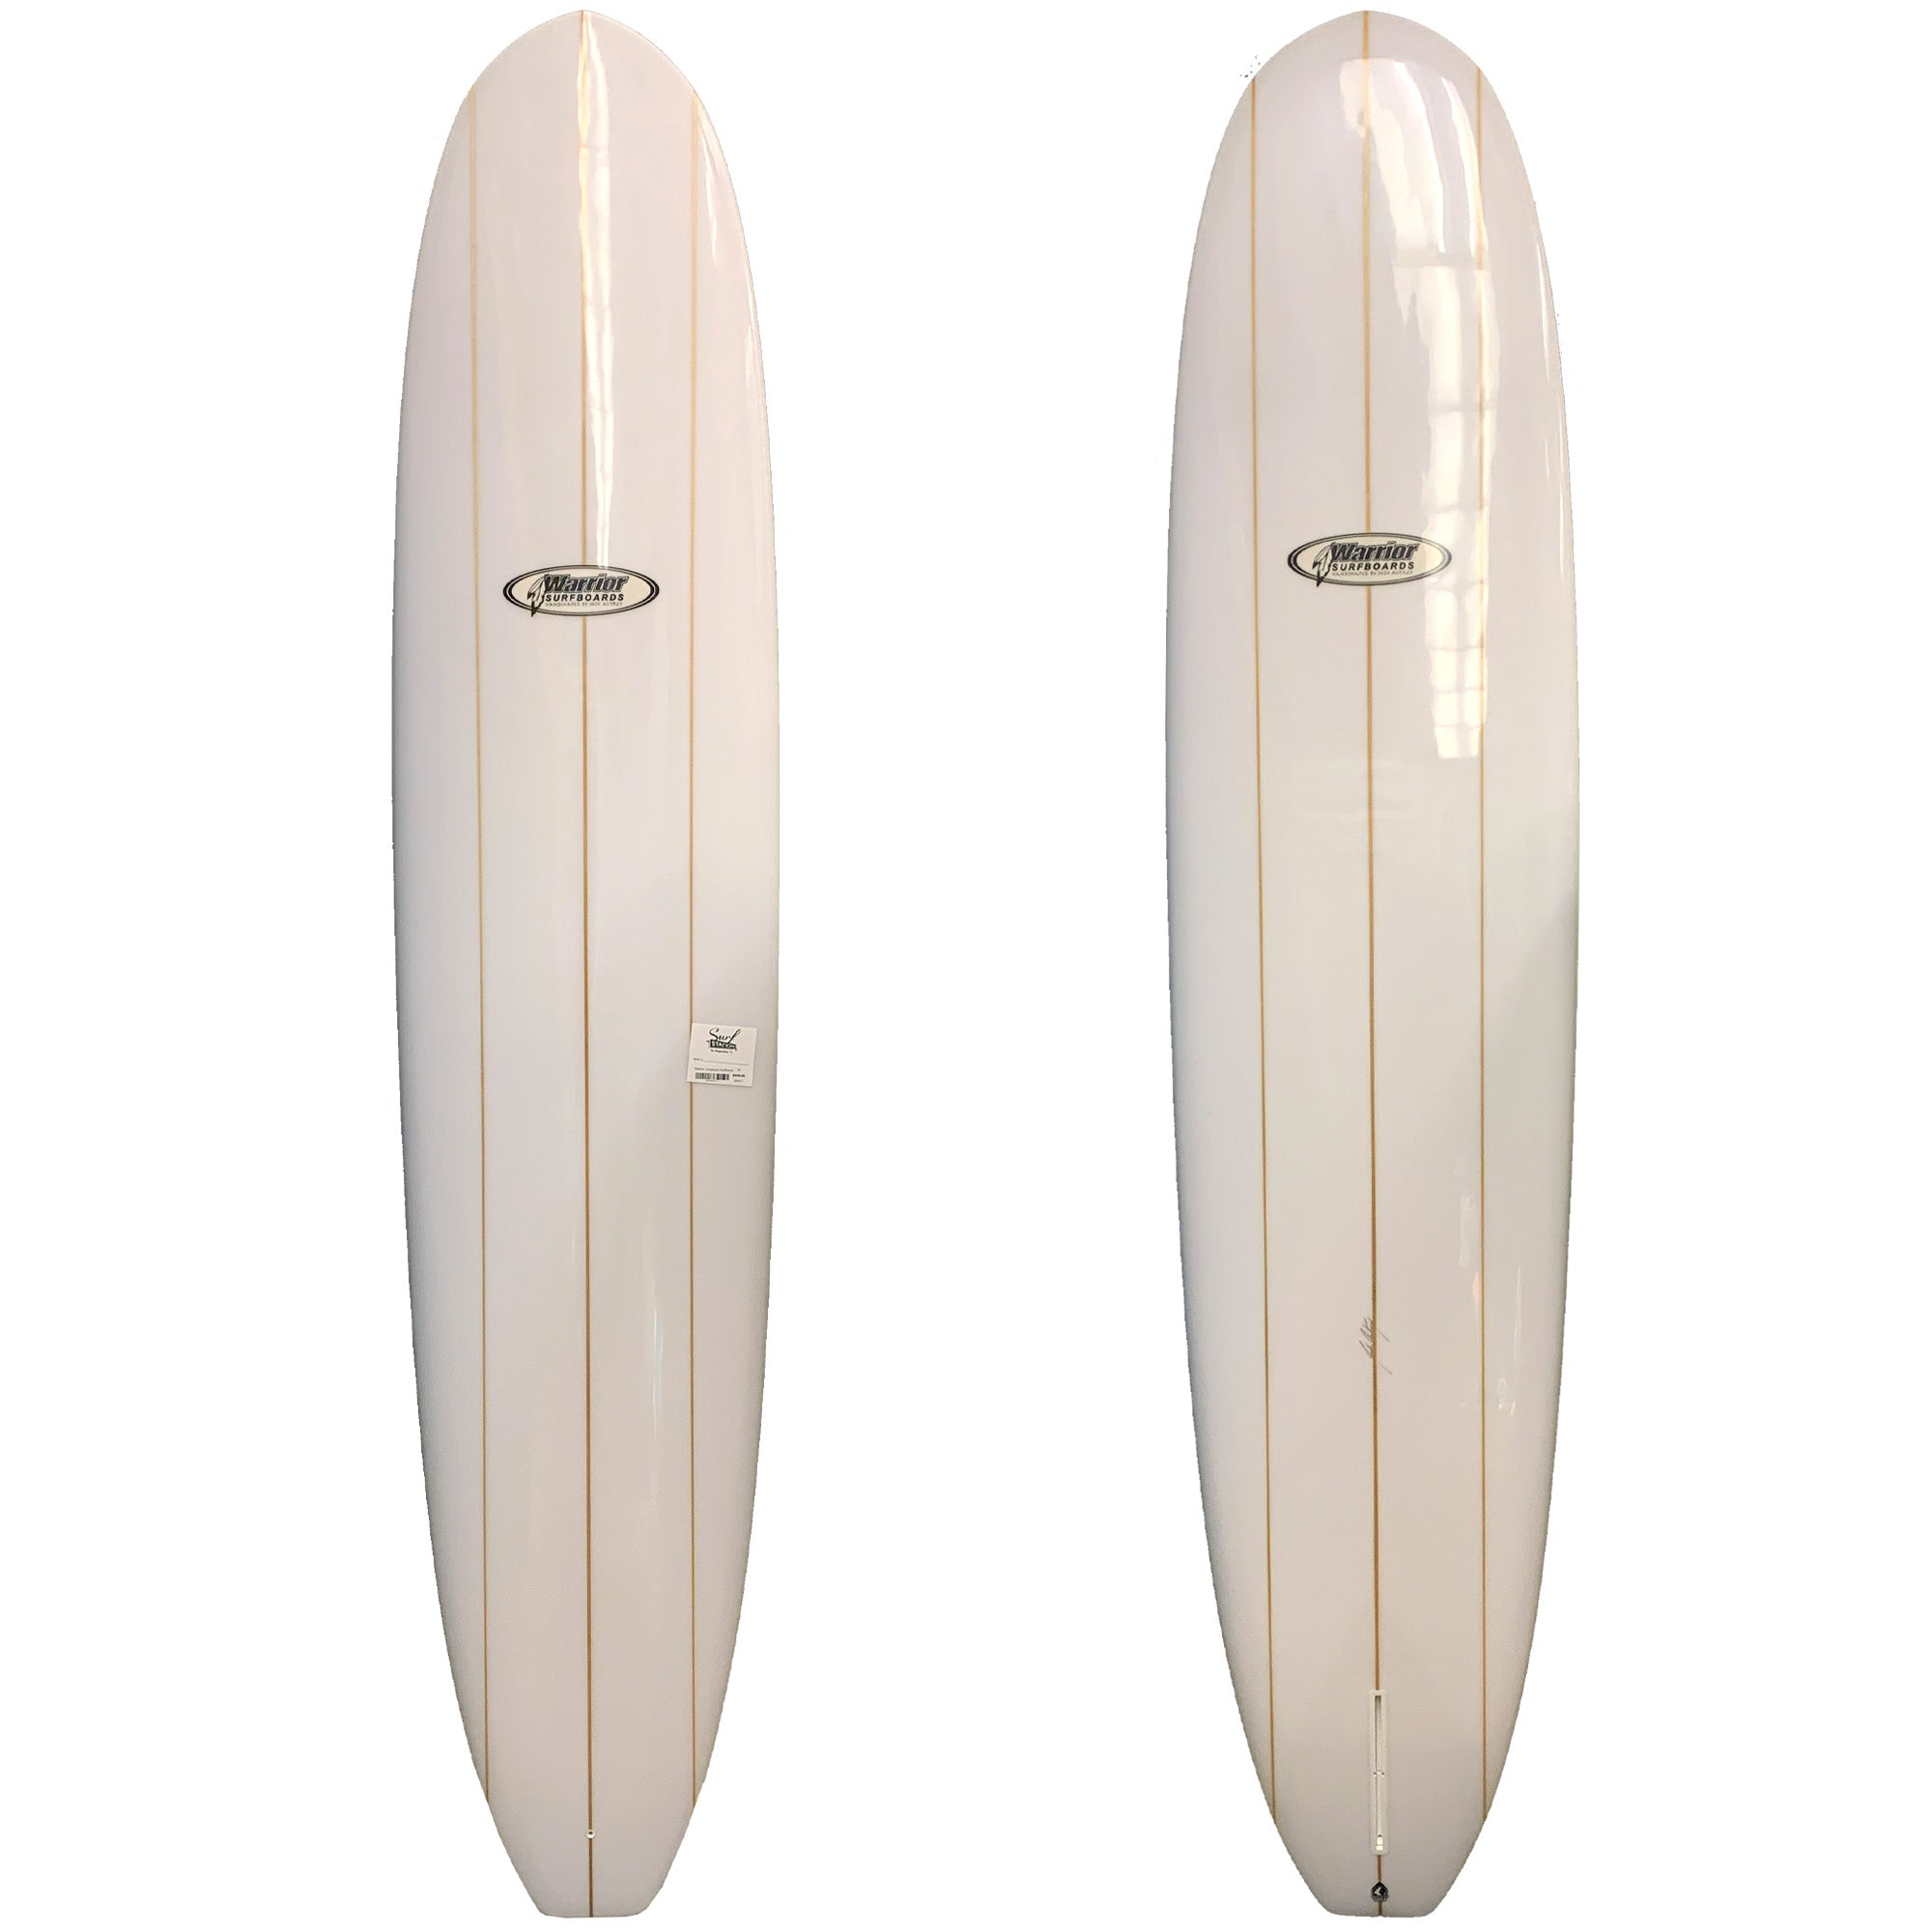 Warrior Longboard Surfboard